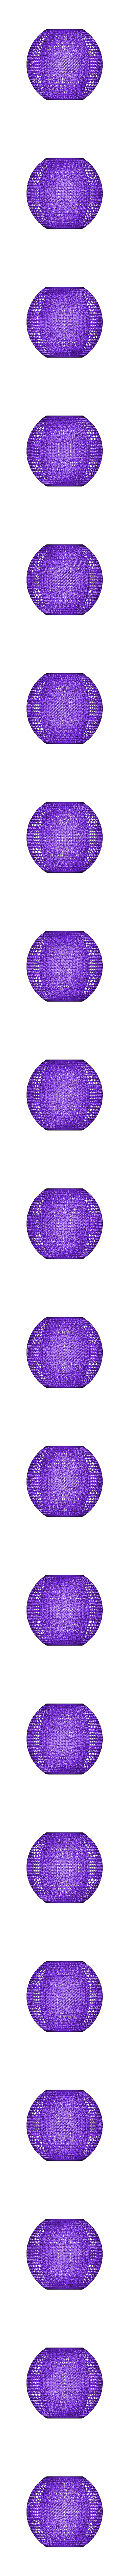 VORONOI.stl Download free STL file Voronoi Lamp Shade • 3D printer template, montuparmar1